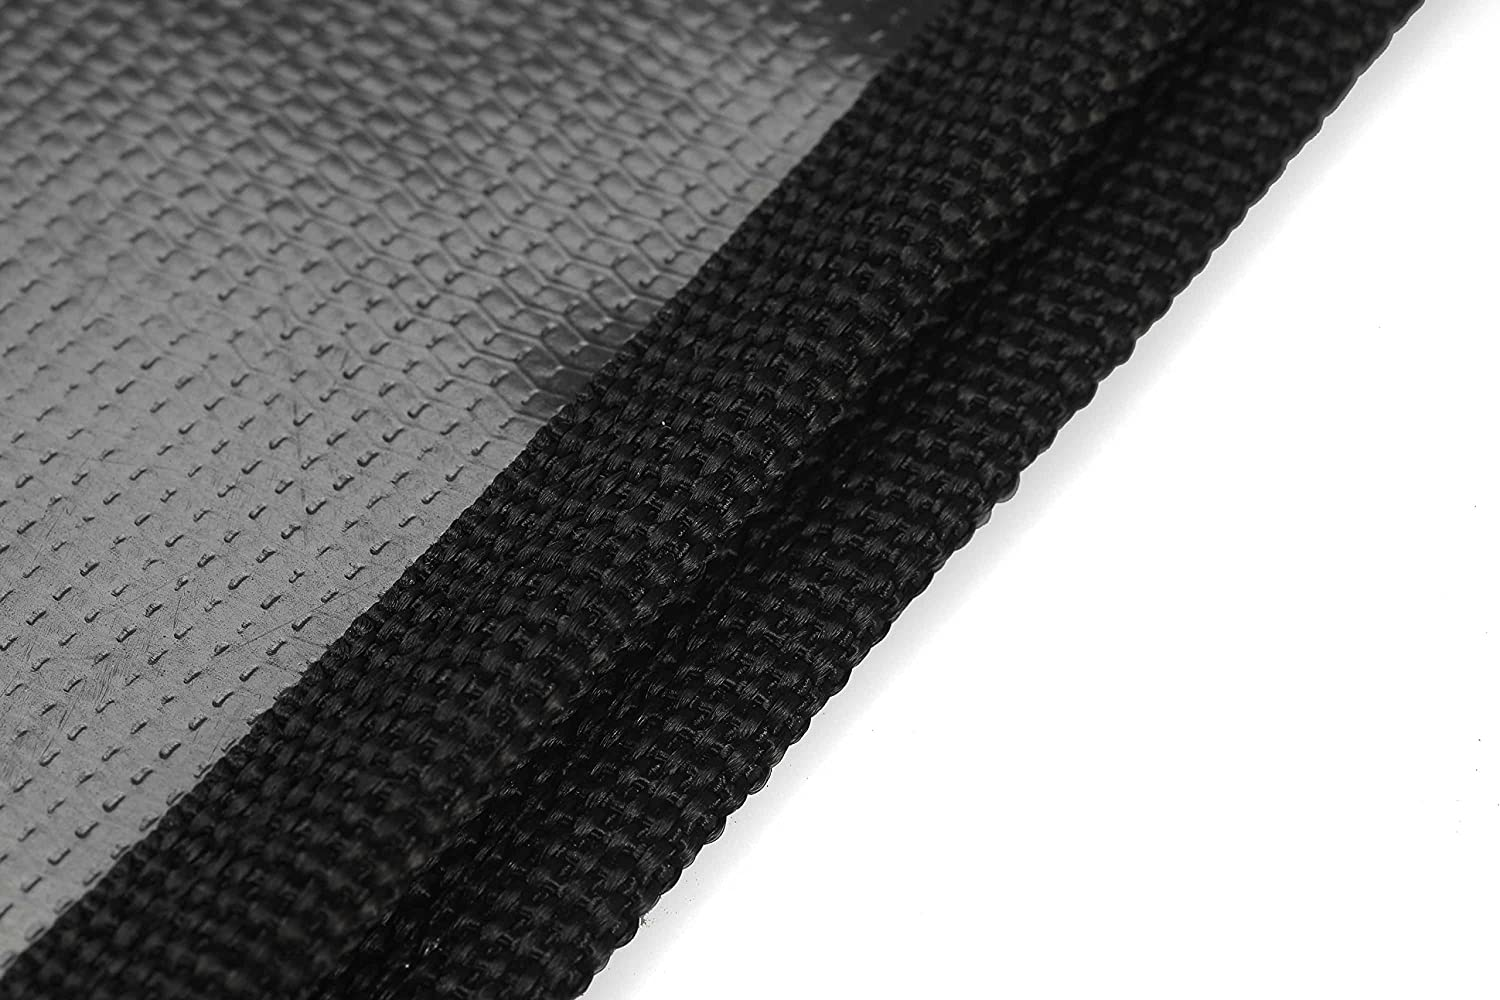 Safety Recovery Dampener ALL-TOP Winch Damper Winch Cable Damper Reflective Strips for High Visibility in Dark!